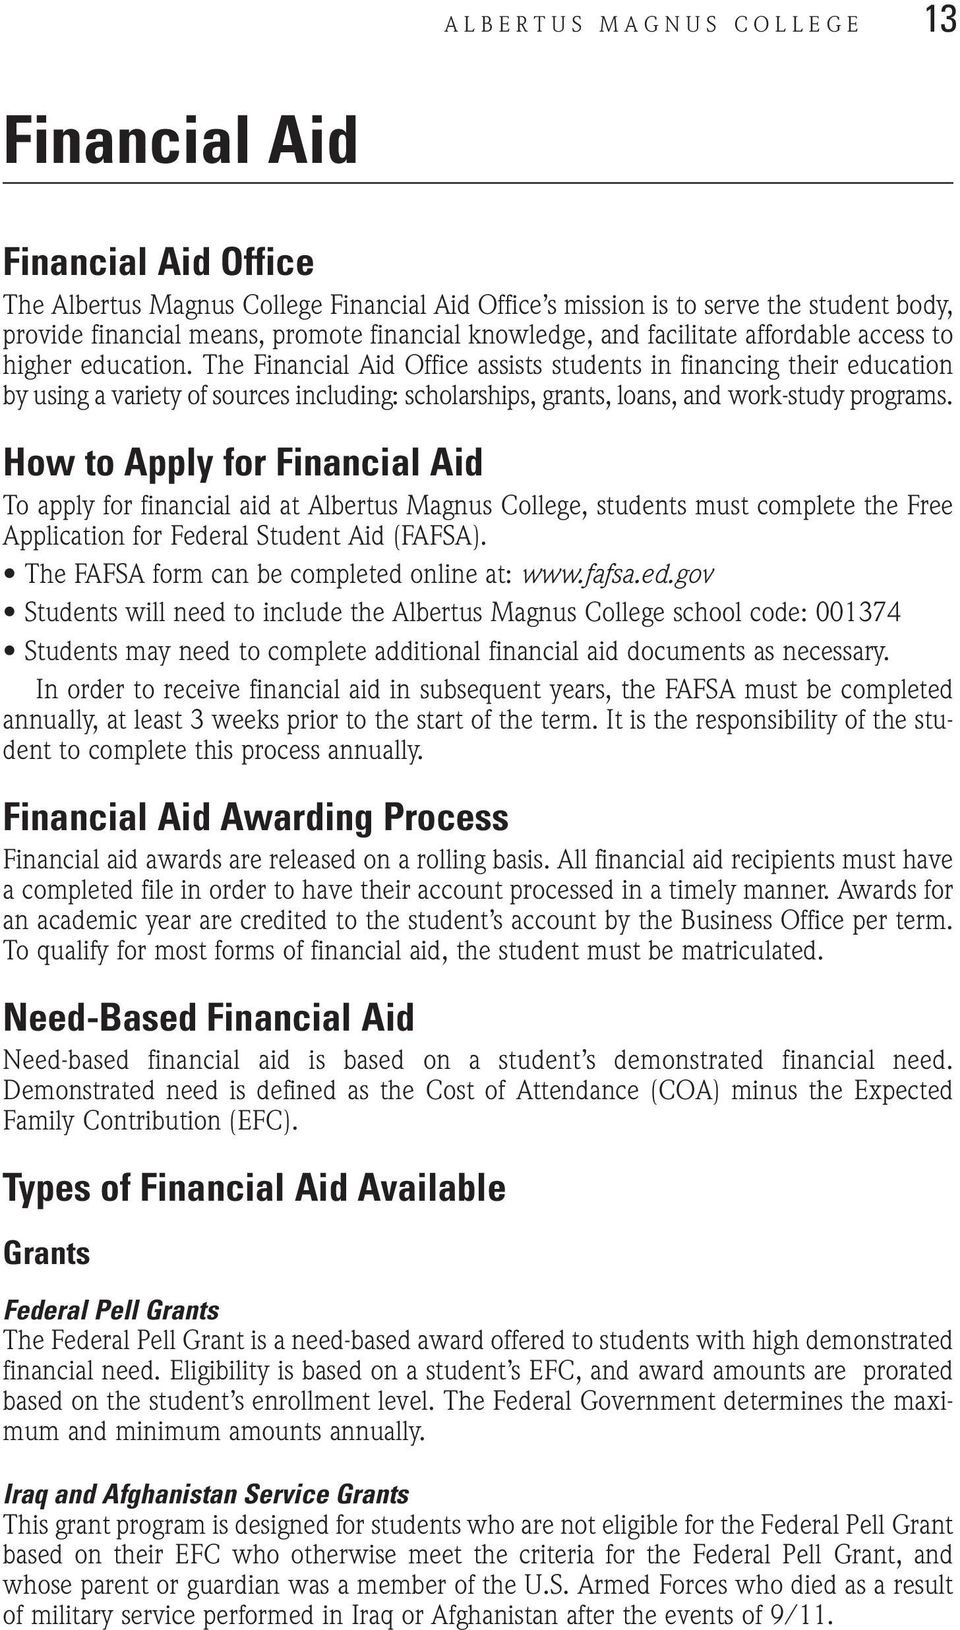 The Financial Aid Office assists students in financing their education by using a variety of sources including: scholarships, grants, loans, and work-study programs.